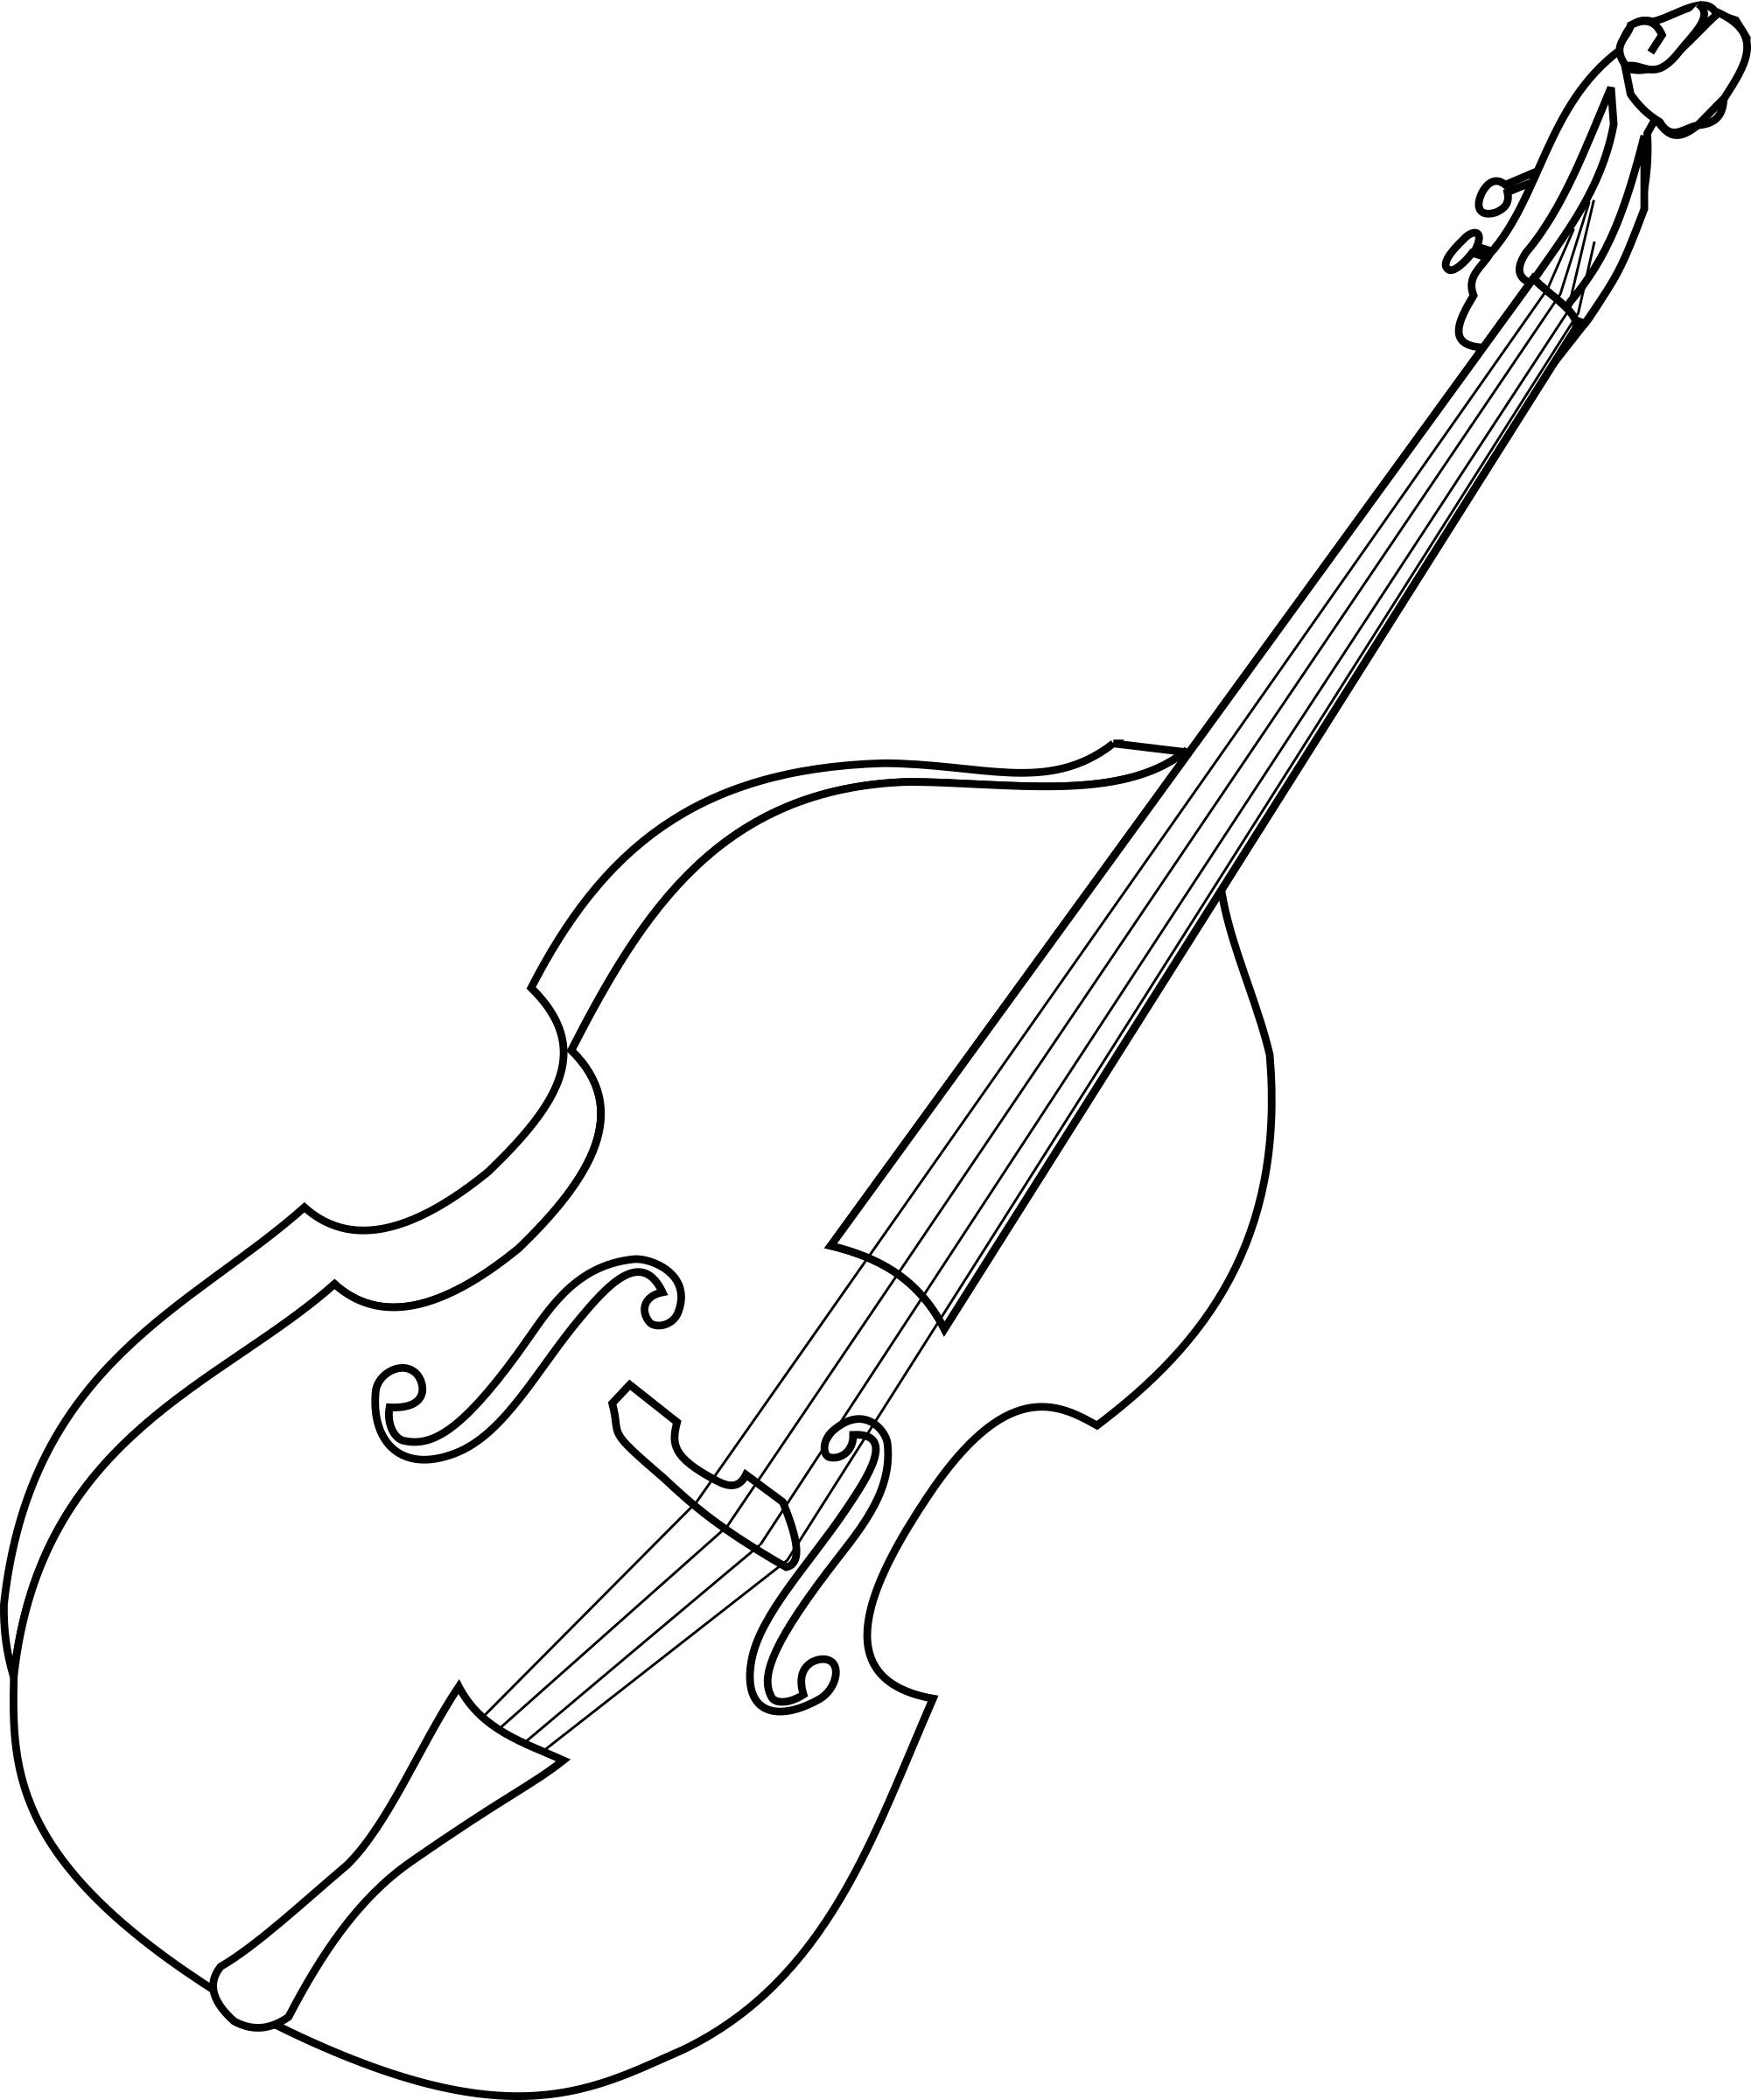 Upright bass clipart philip martin picture black and white library Bass clipart upright bass, Bass upright bass Transparent ... picture black and white library